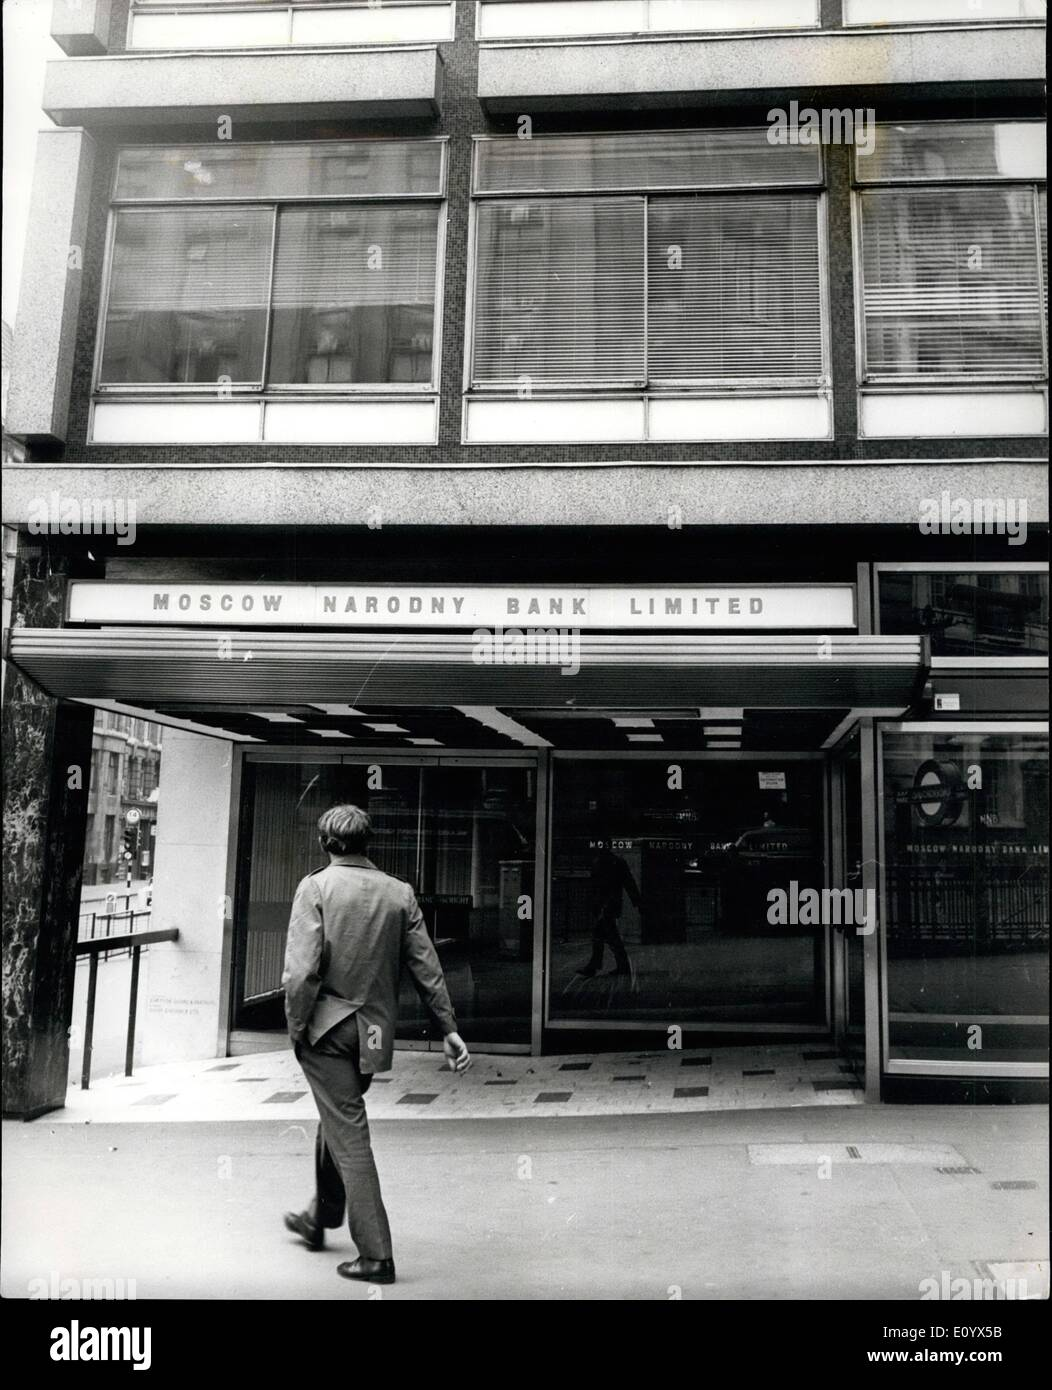 Sep. 09, 1971 - Britain Expels 105 Russians After KGB Defector Exposes Soviet Spy Net In London: Britian explled 90 Russian diplomats and officials yesterday for spying, forbade the return of 15 others temporarily out of the country and put a limit on the numbers of officials the Soviet Government may station in London. The drastic action came after the defection of a senior agent of the KGB intelligence service earlier this month and his disclosure of plans to infiltrate saboteurs and more spies into Britain. The agent has not been named - Stock Image